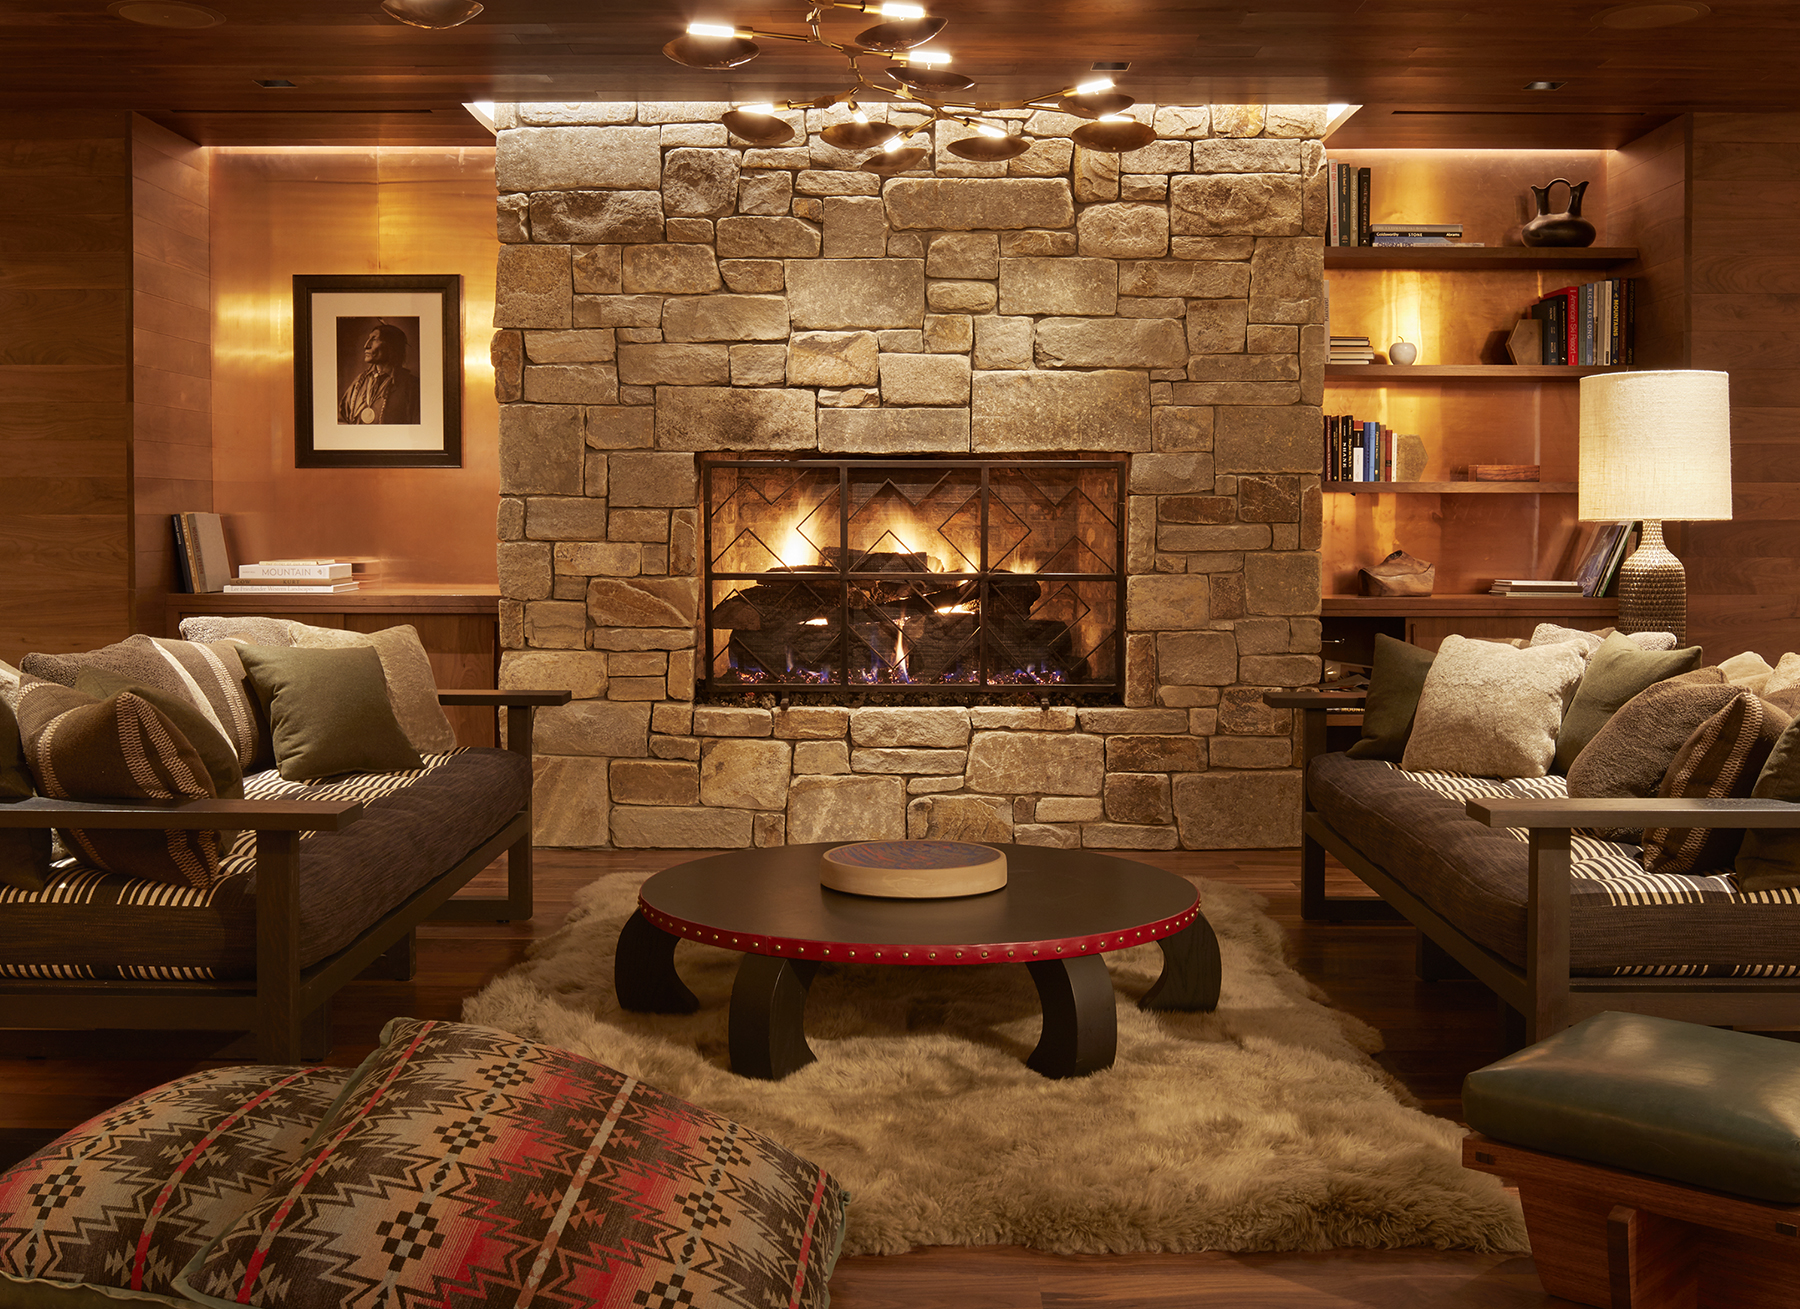 lobby area with fireplace and couches